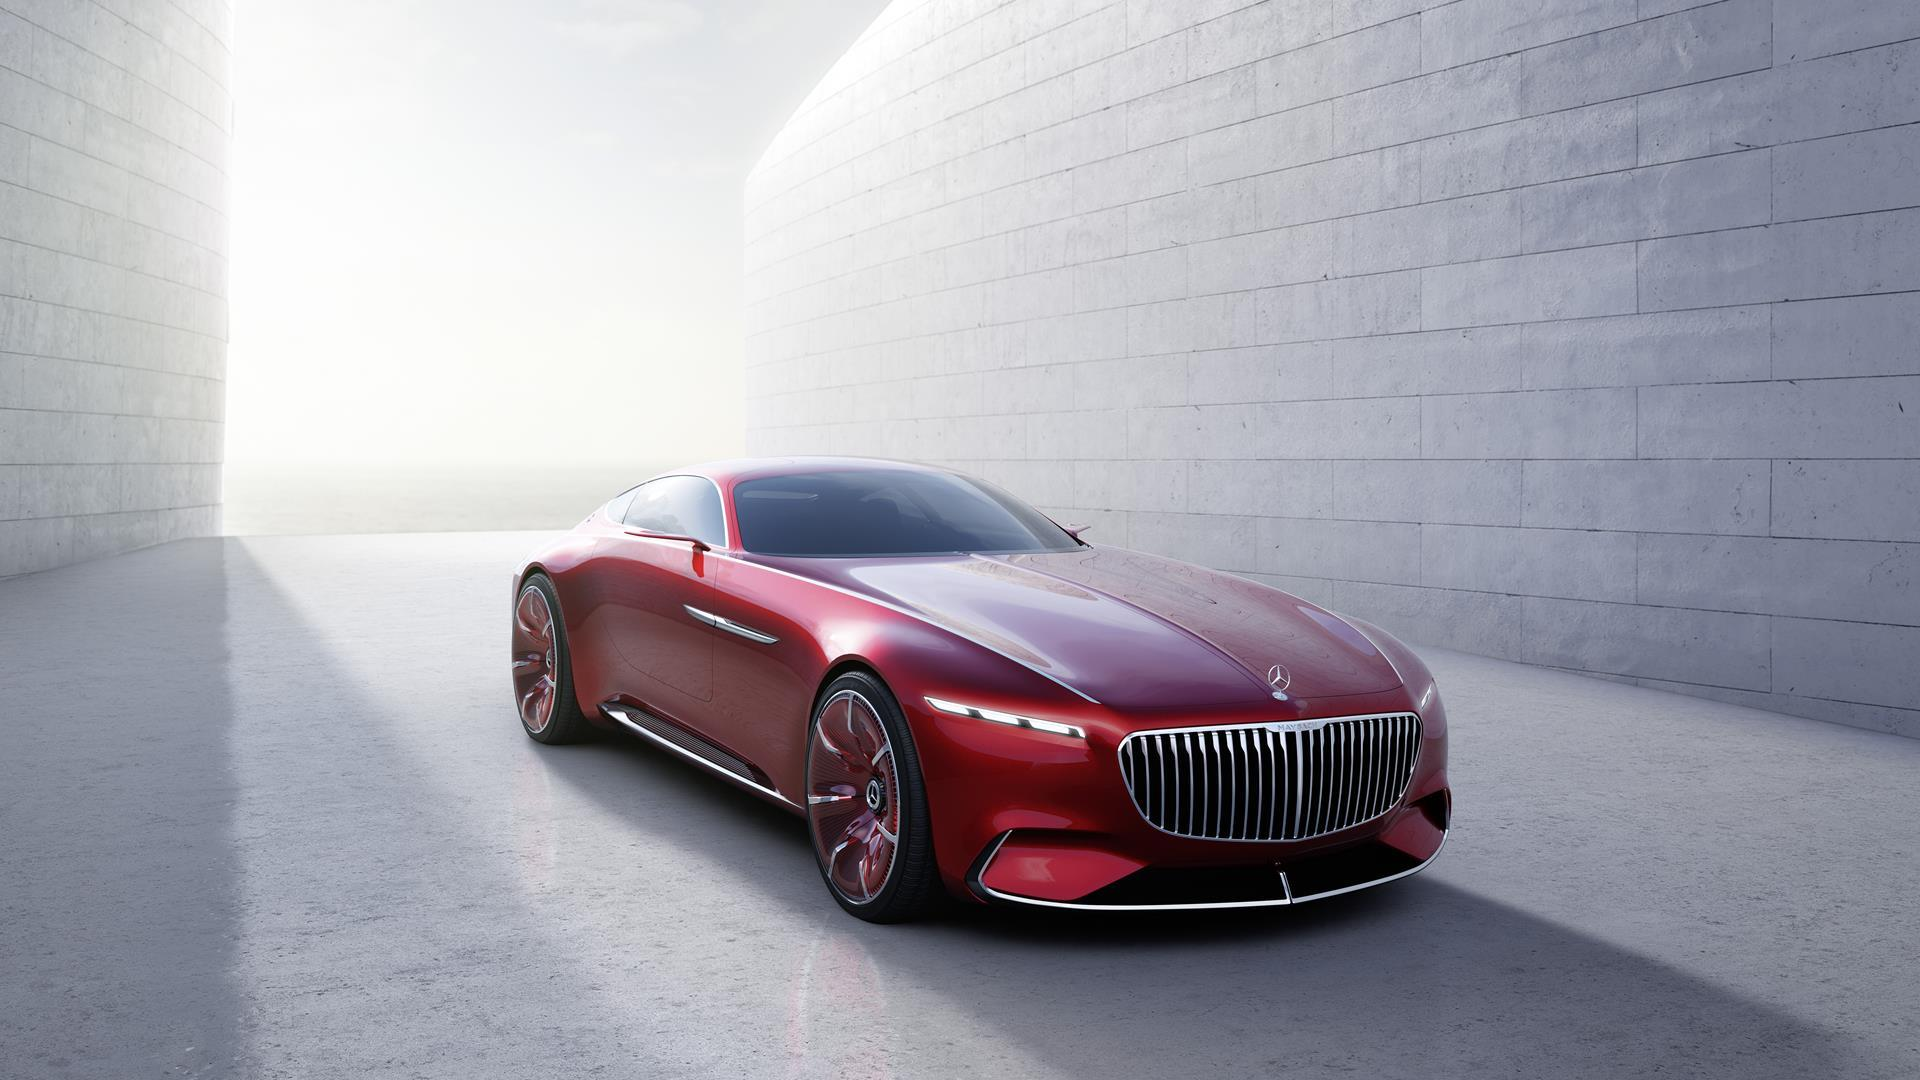 2016 mercedes-benz vision maybach 6 concept wallpaper and image gallery